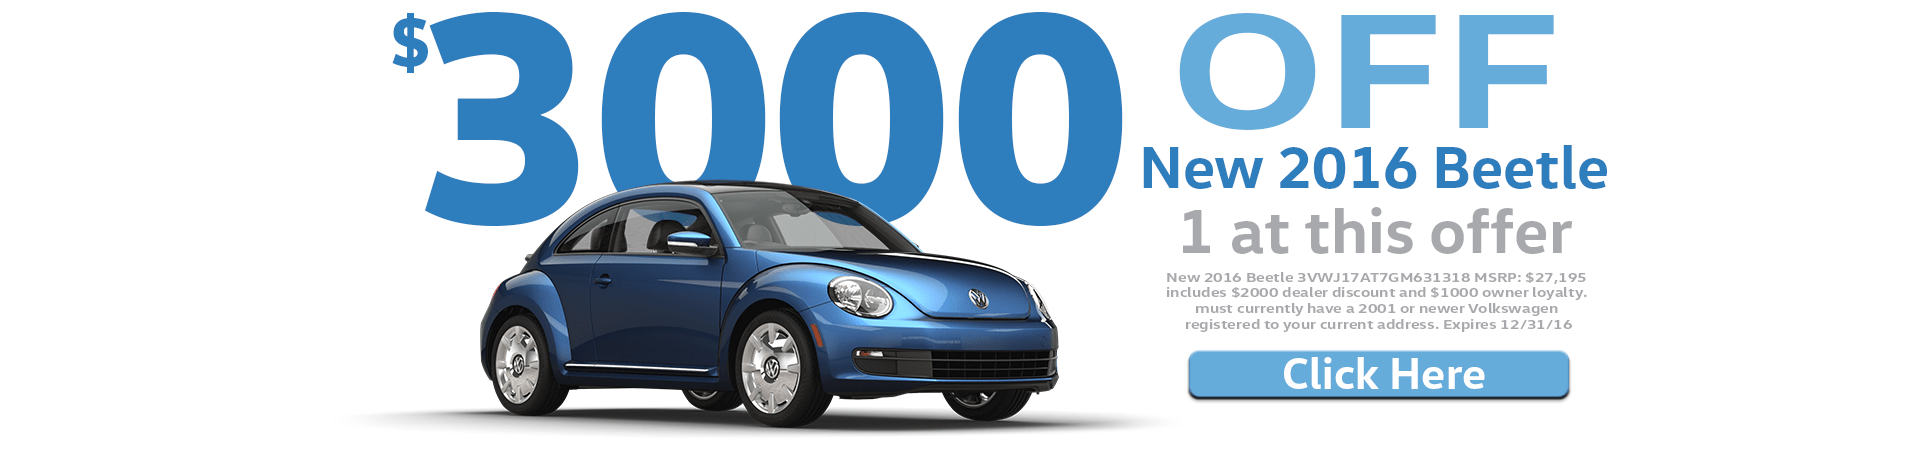 $3000 Off a New 2016 Beetle